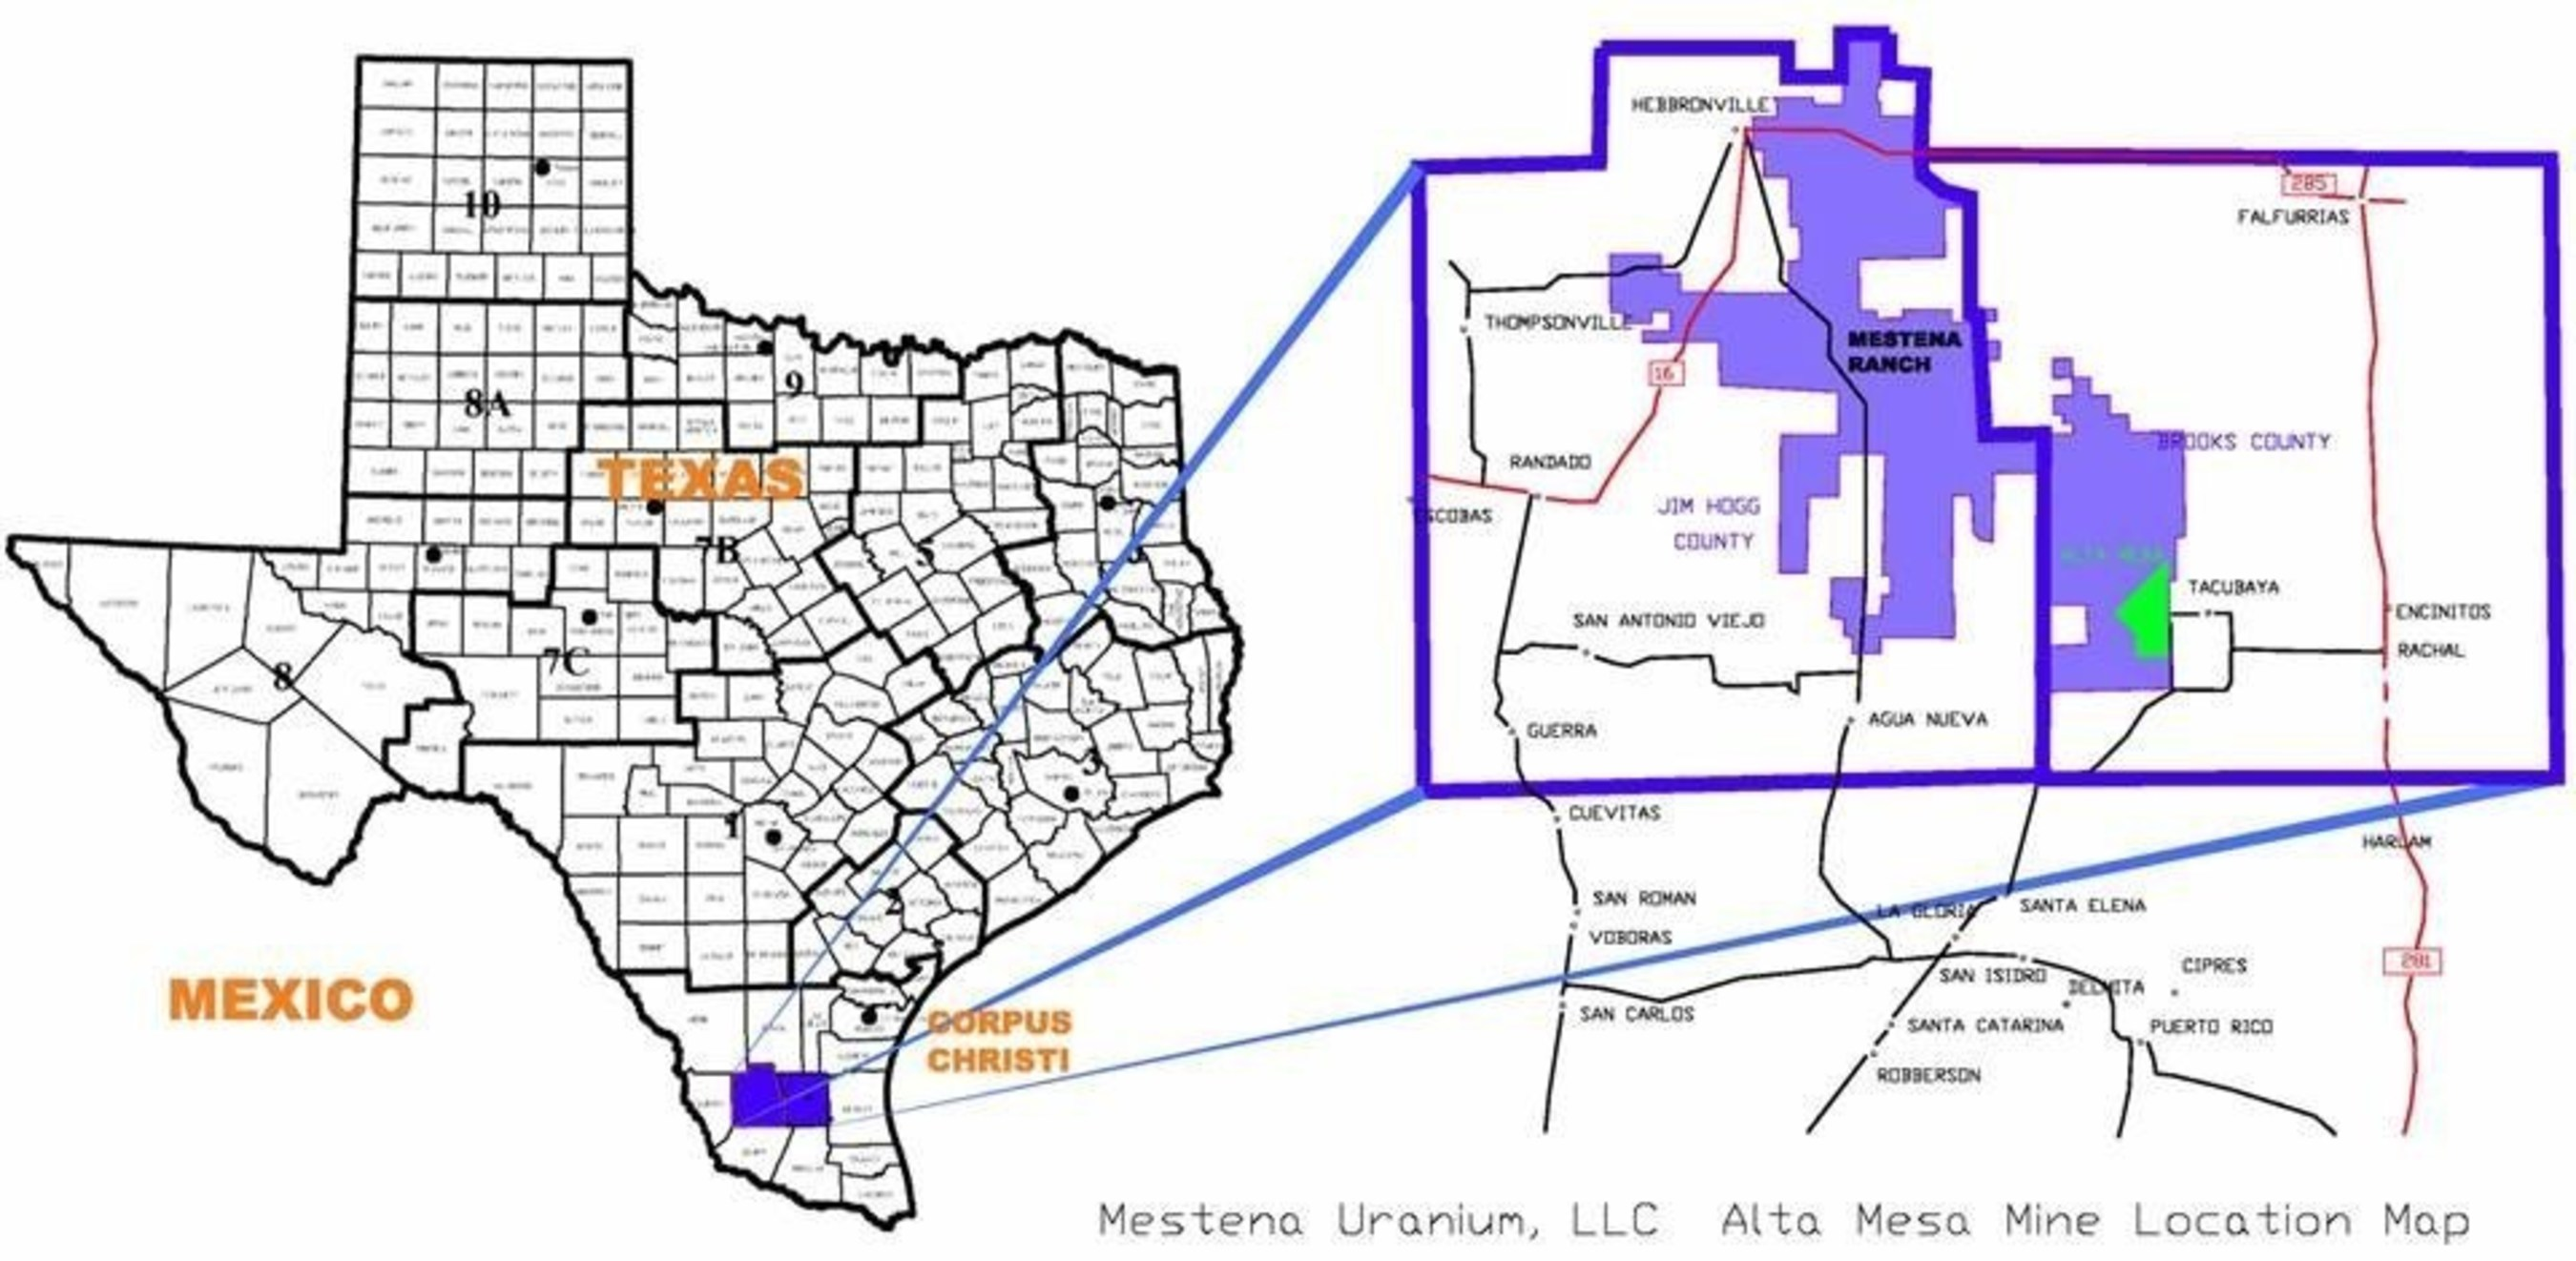 Energy Fuels to Increase Lower-Cost ISR Uranium Production Profile through Acquisition of Mesteña